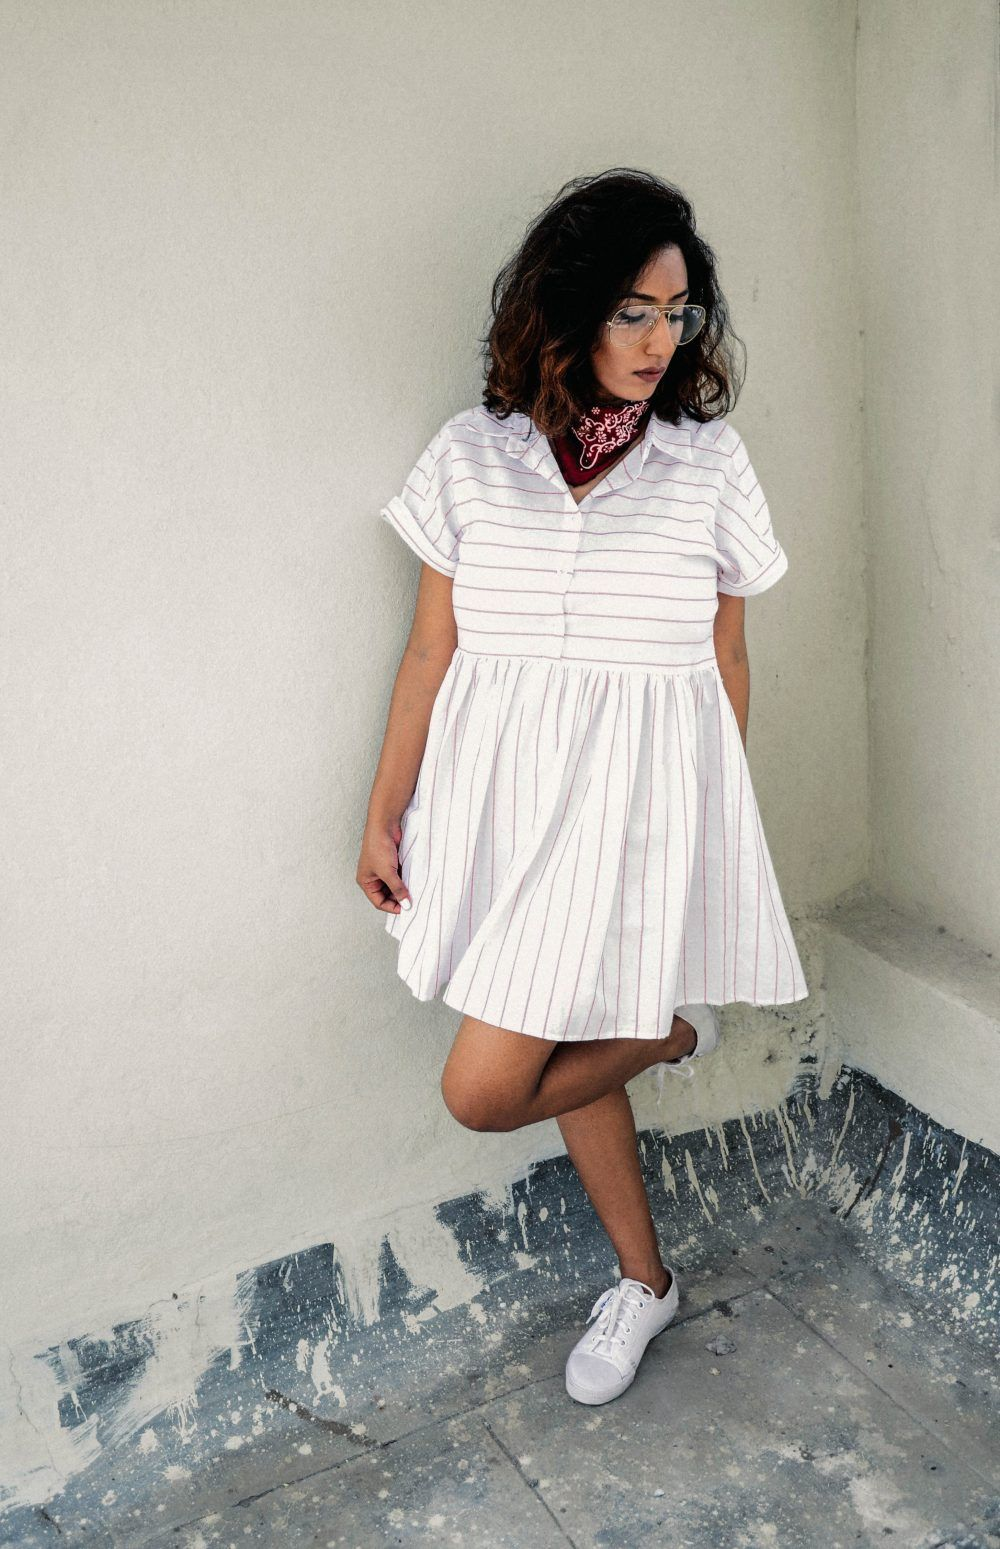 Lookbook ; Striped ; Dress ; Clear Aviators ; Outfit ; fashion photography ; Brown Lips ; New Chic ; ootd ; sneakers ; white ; street style ; neckerchief; red ; bandana ; strong ; Dark ; summer fashion ; summer outfit ; spring ; summer 17 ; Hyderabad ; Editorial ; Naznin ; Naznin Suhaer ; dusky; model ; indian blogger ; hyderabad fashion bloggers ; hyderabad bloggers ; hyderabad fashion blogger ; I Dress for the Applause ;